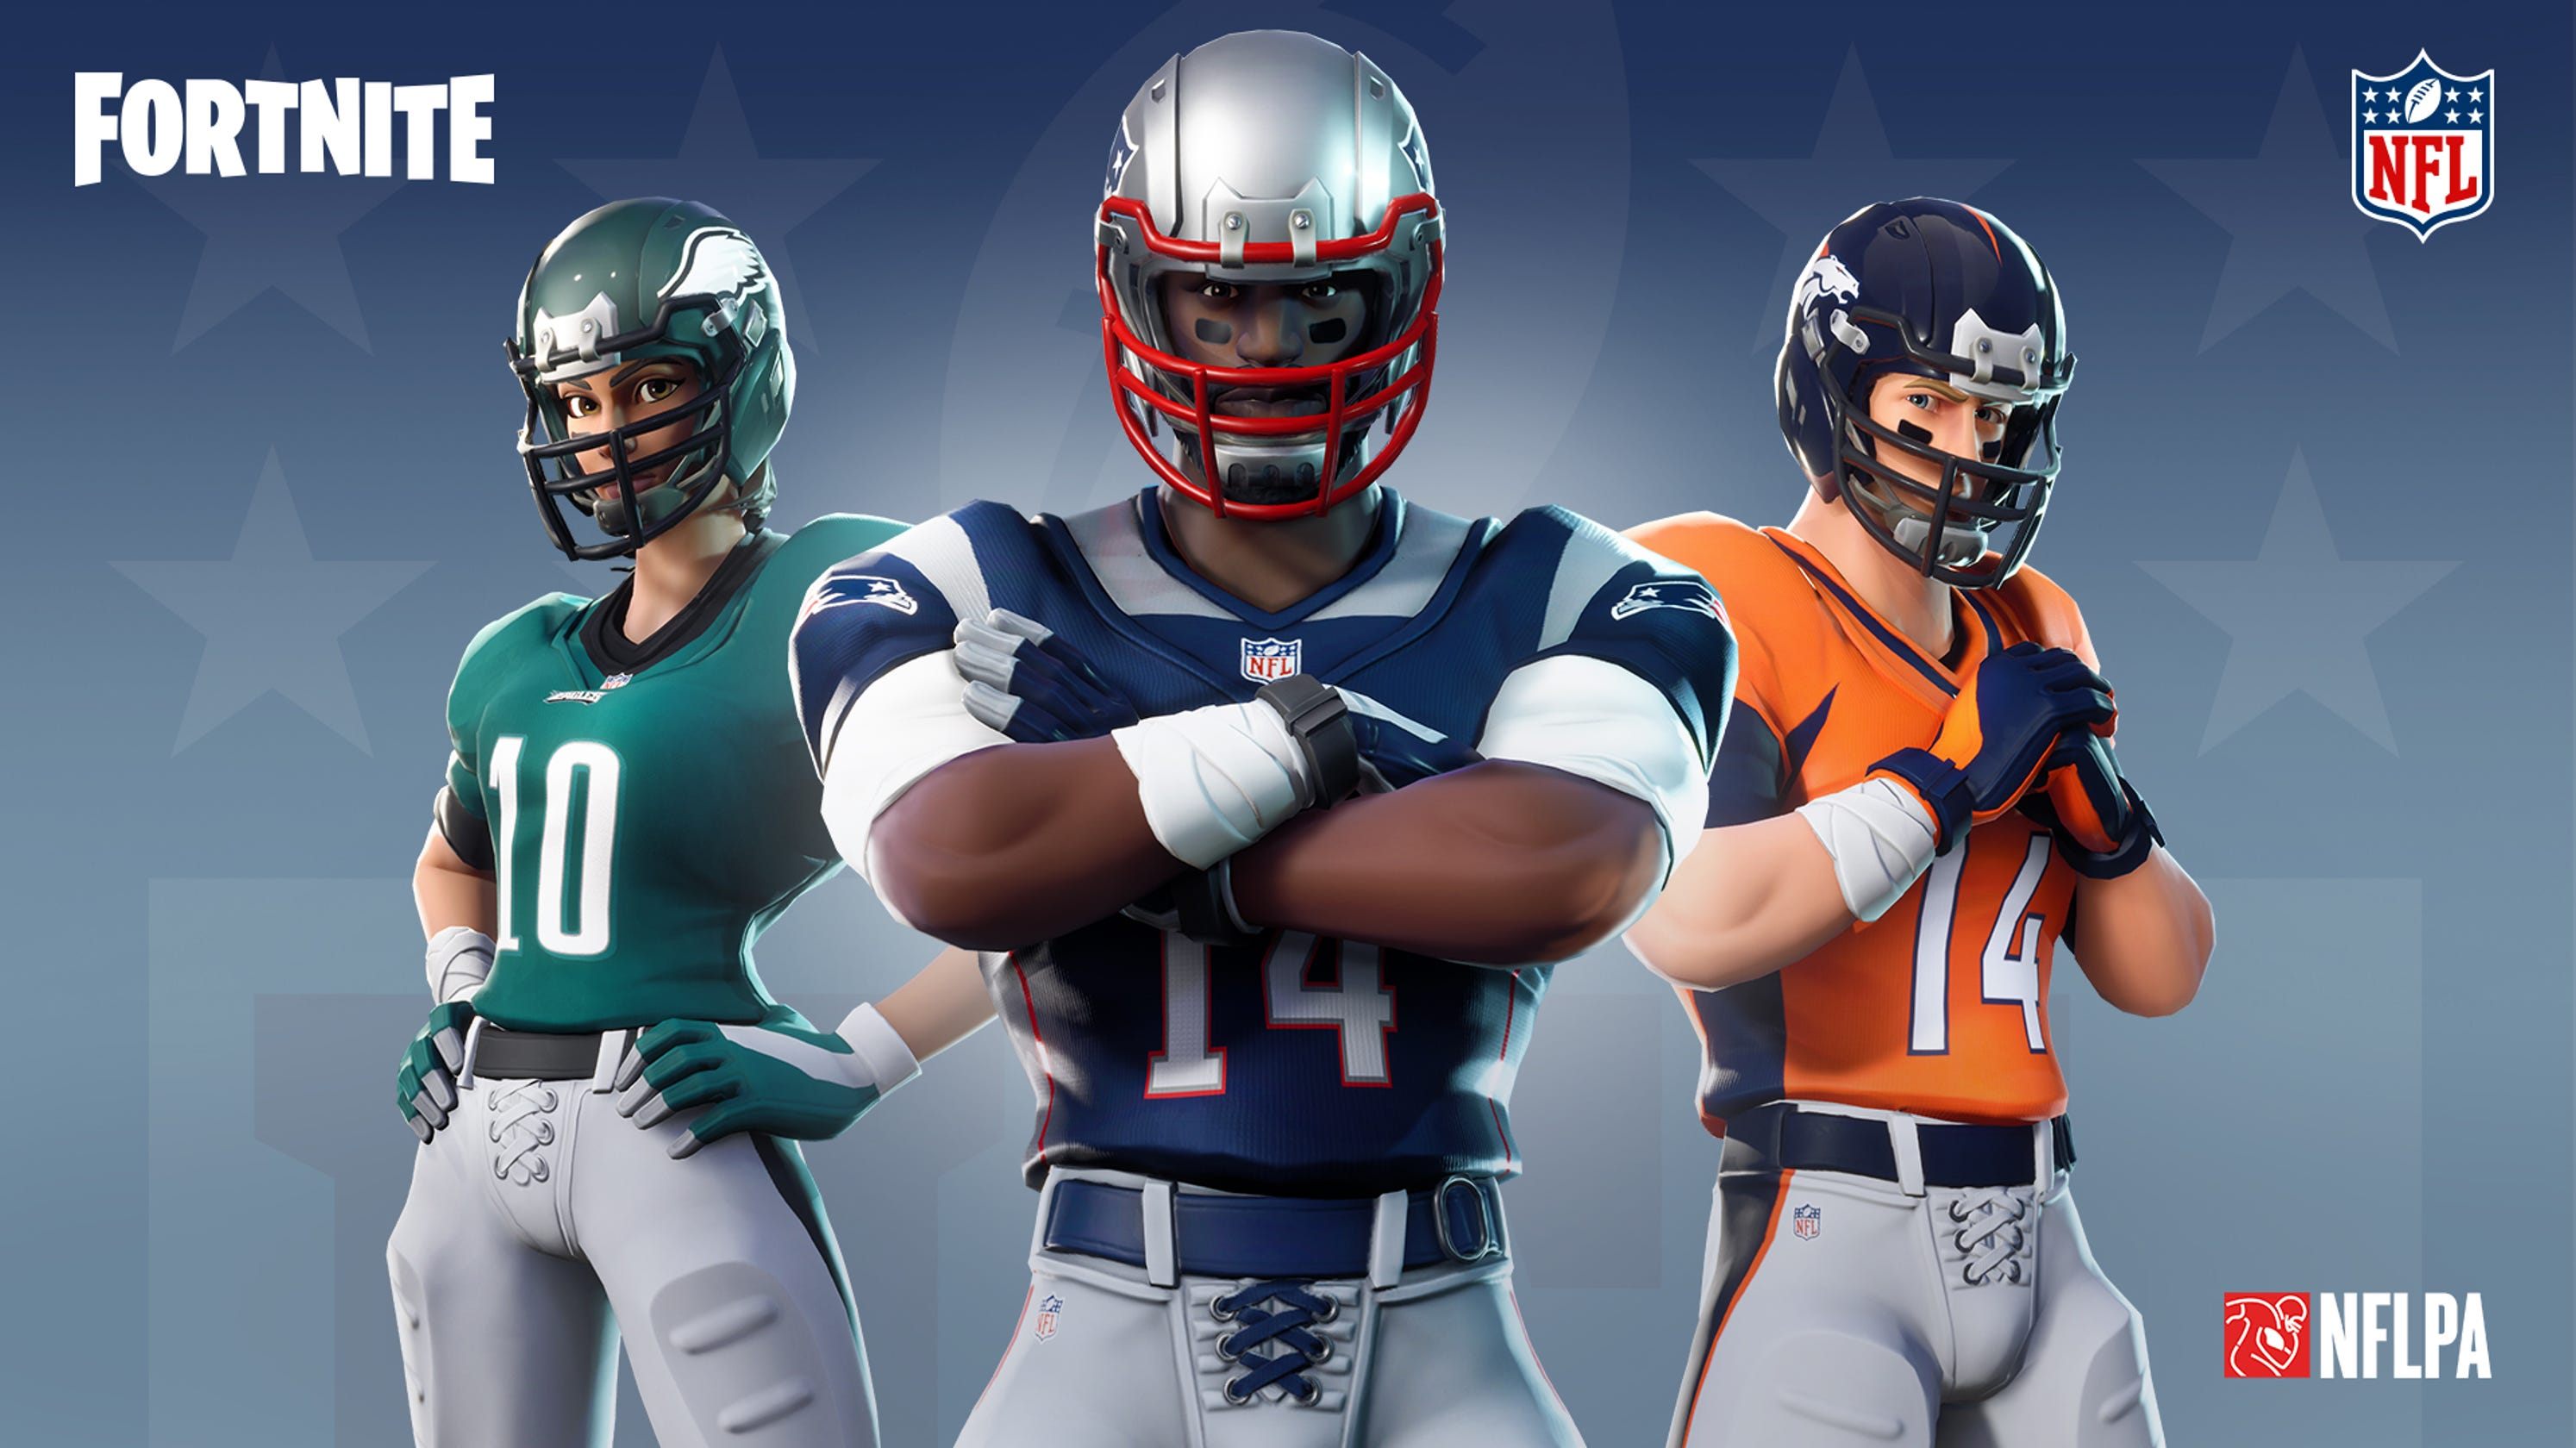 c31a2a43cf2 Here s why the NFL and Fortnite are made for each other